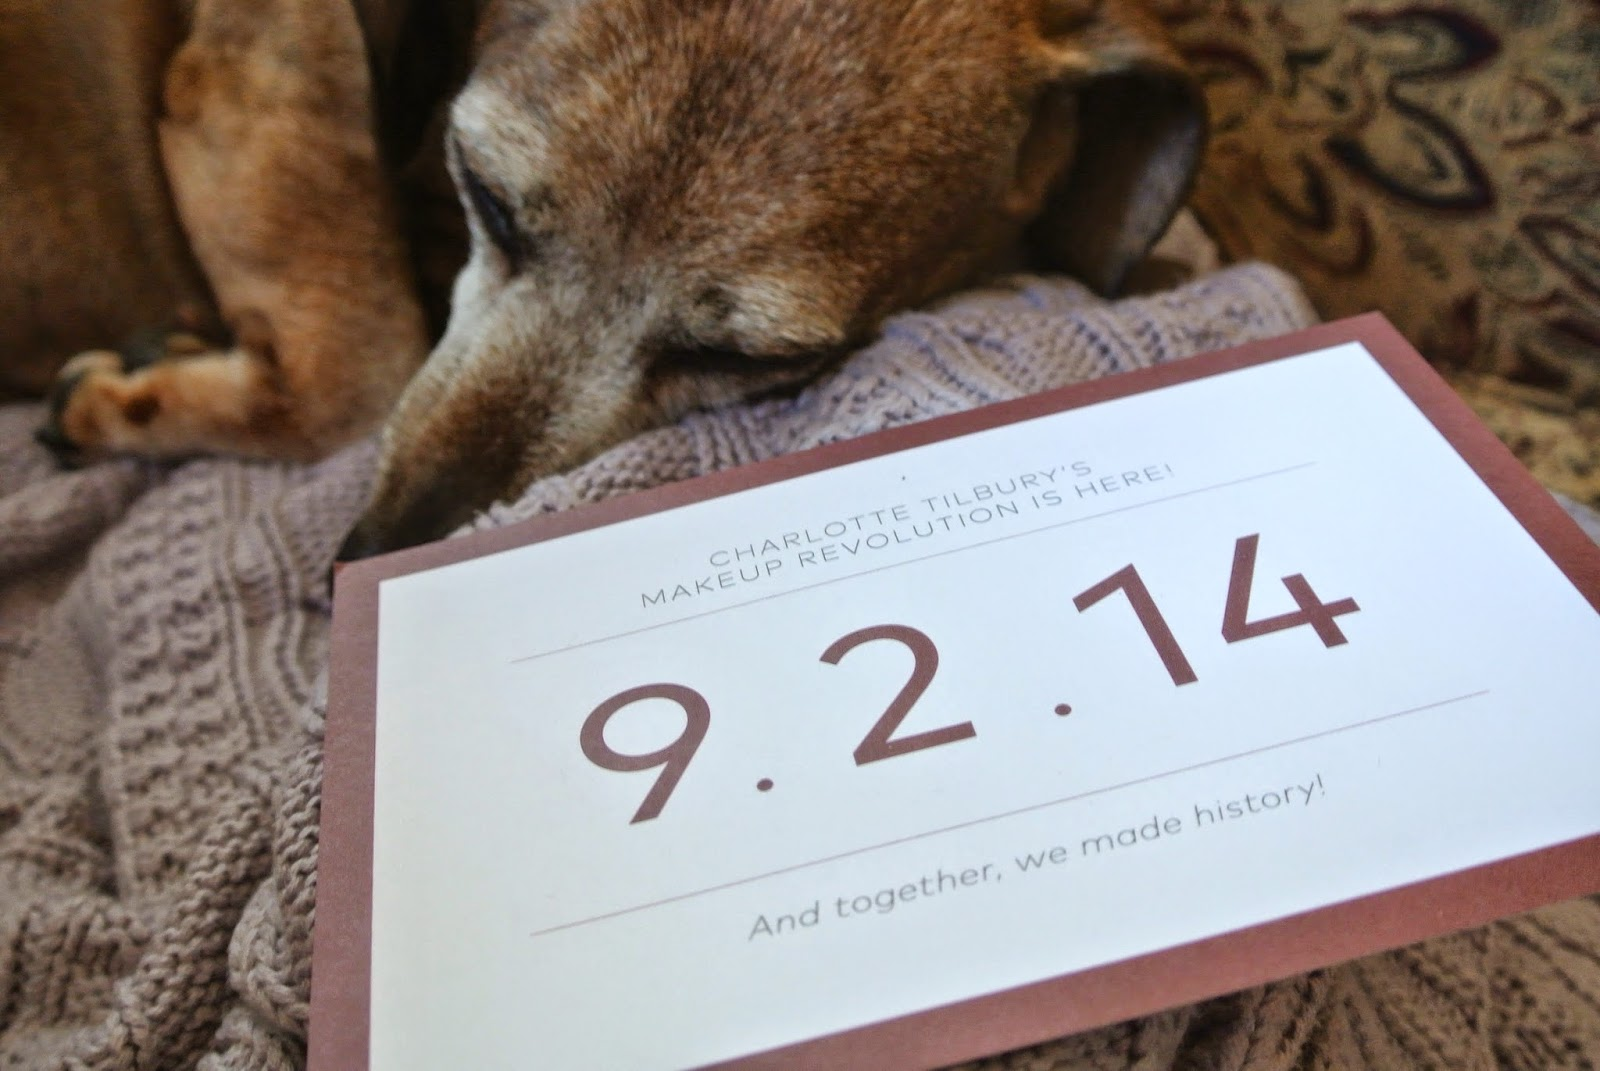 My dog with Charlotte Tilbury preview postcard.